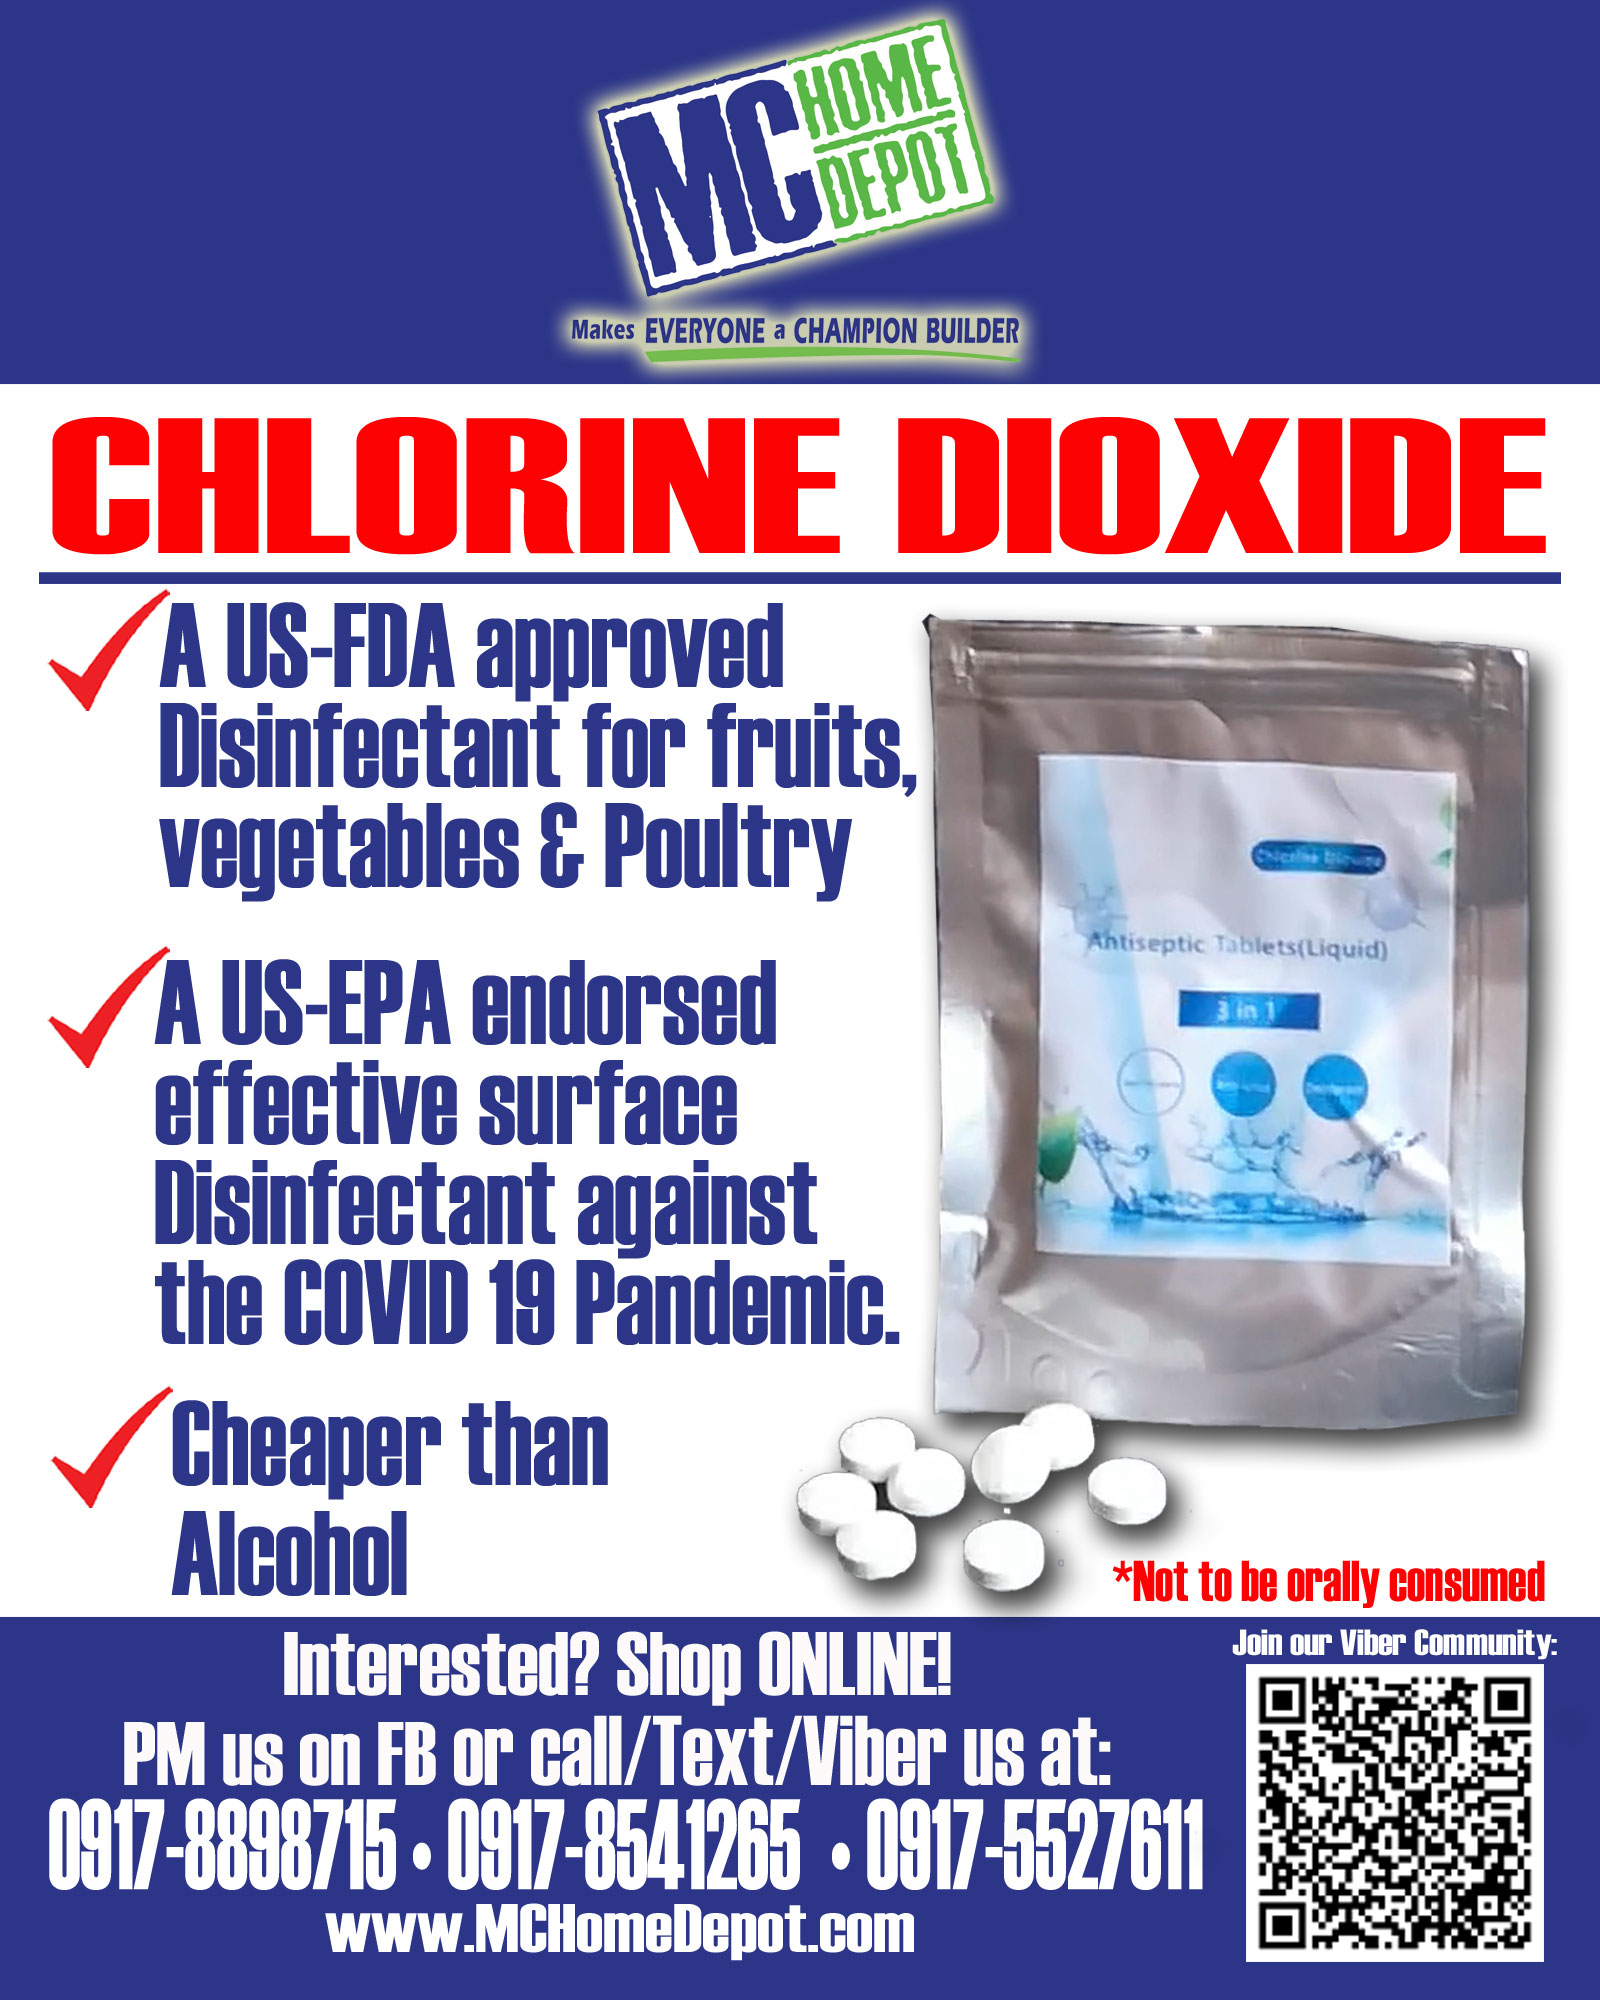 The truth about Chlorine Dioxide